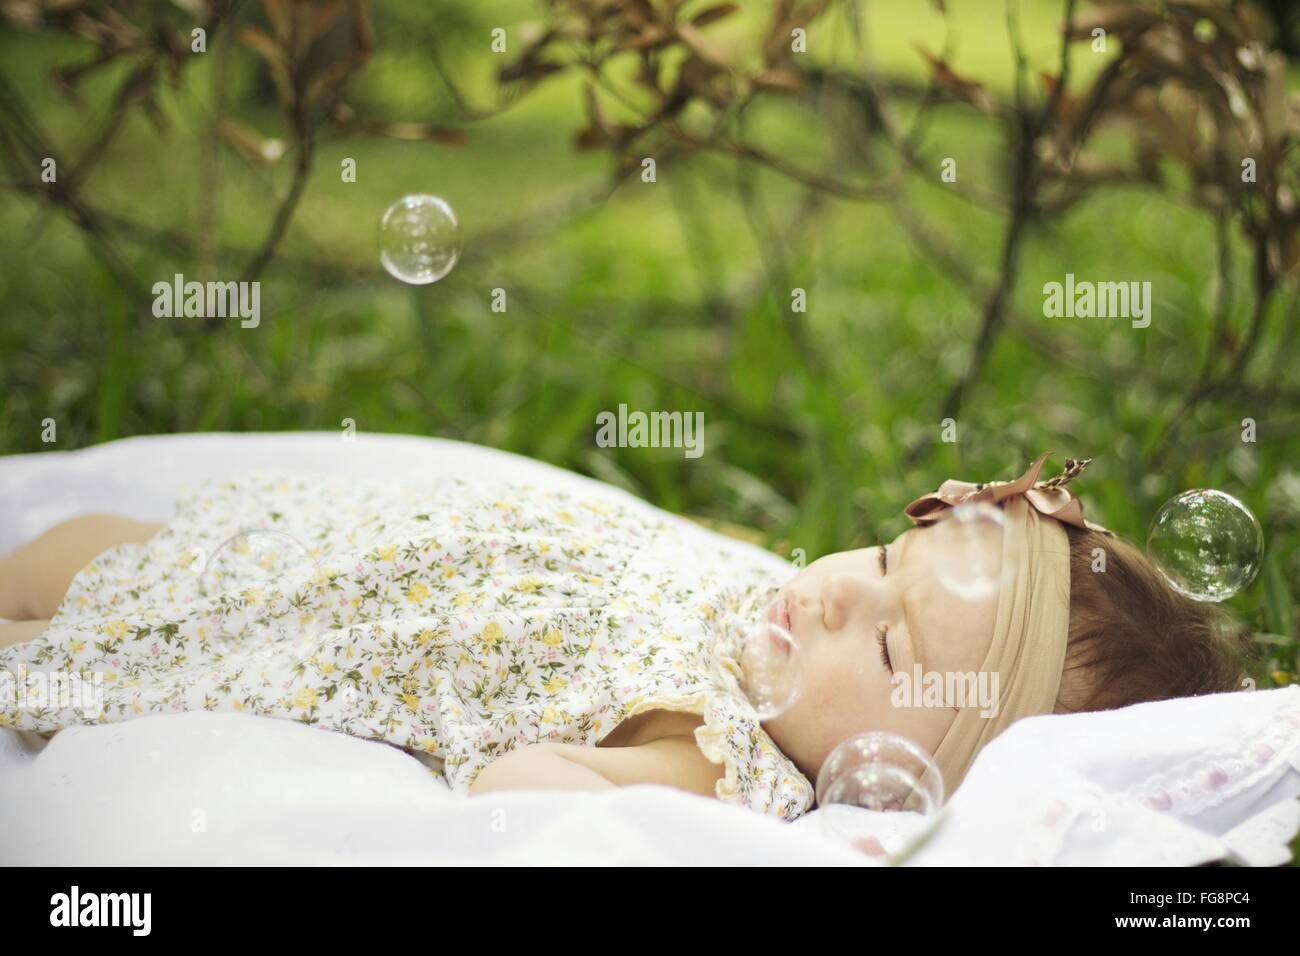 Baby Girl Surrounded By Bubbles In Park - Stock Image